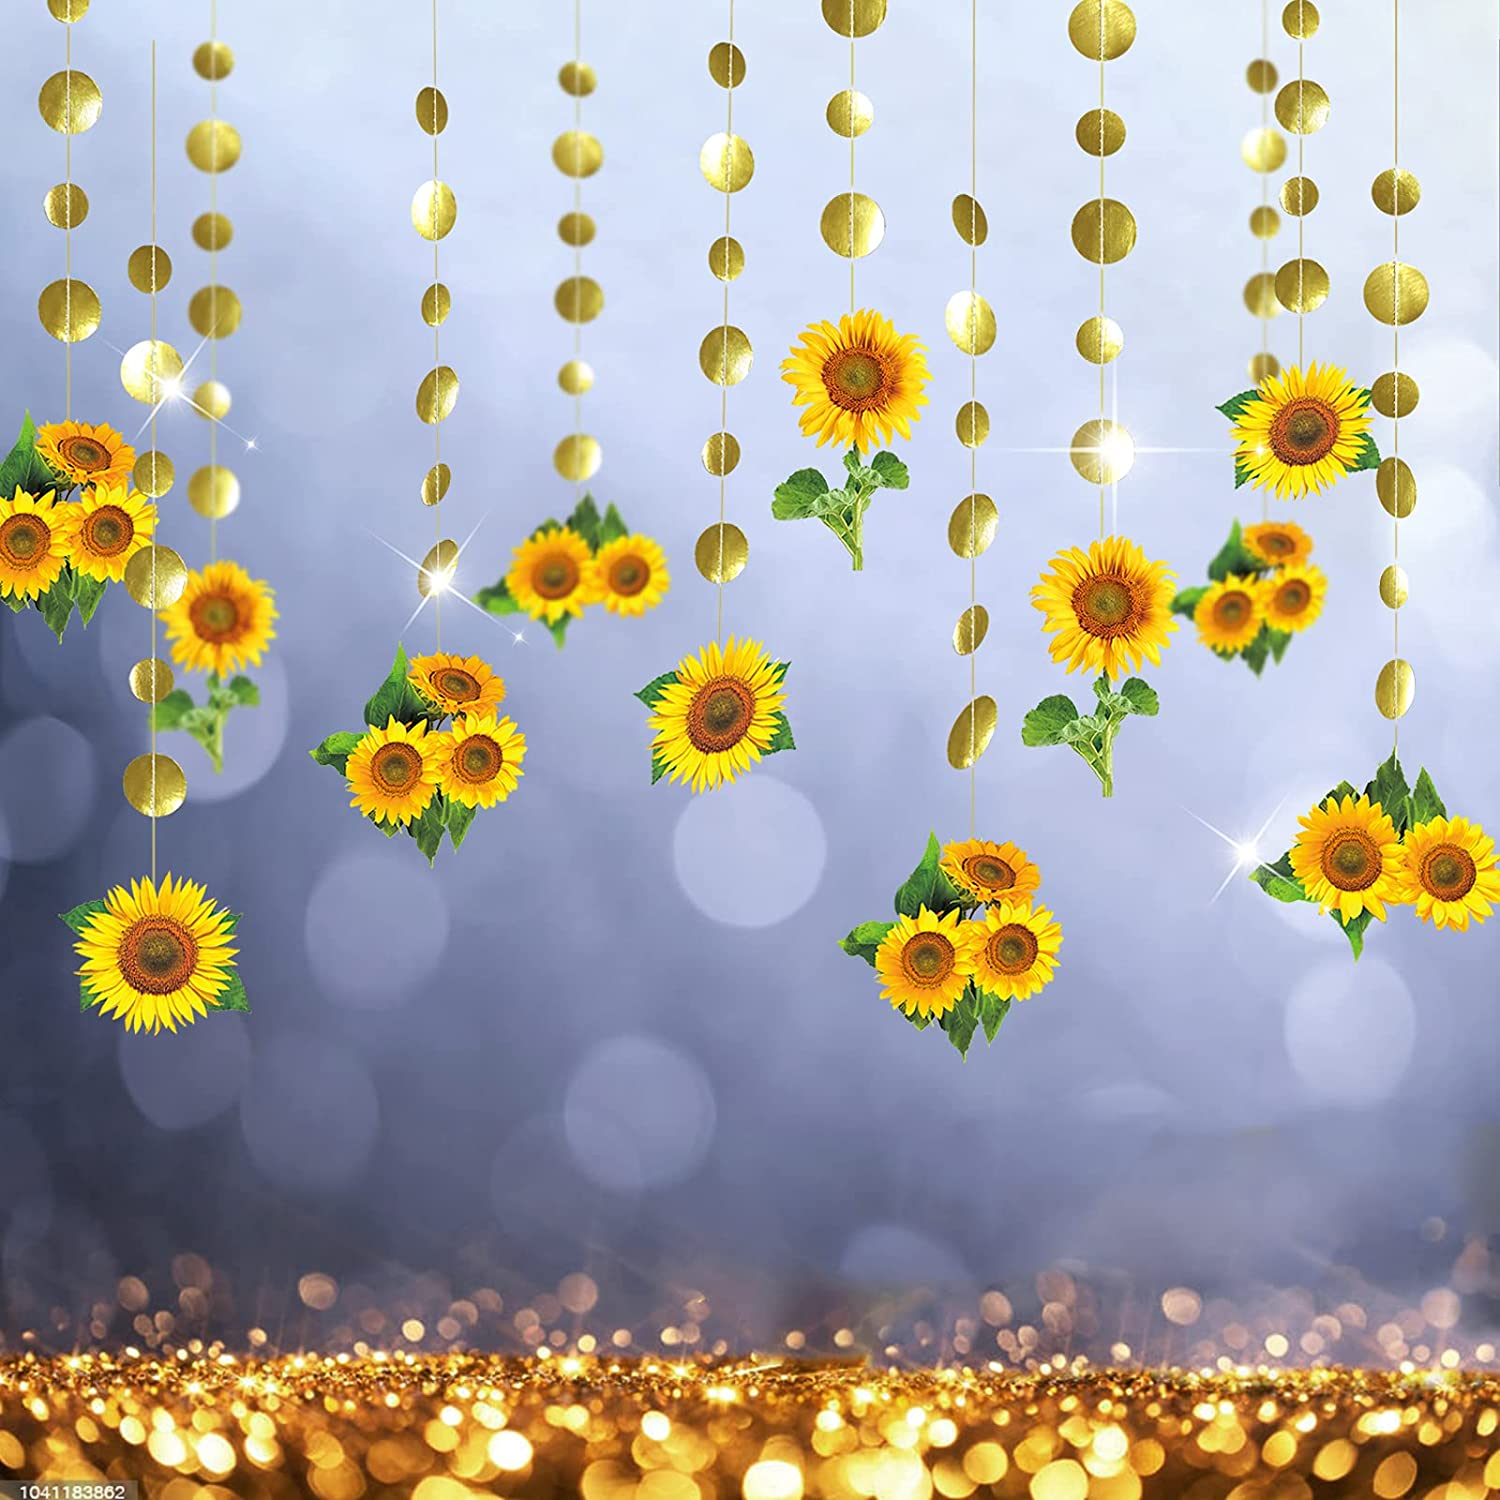 12 Strings Sunflower Garlands for Kids Birthday Party Decorations Sun Flower...